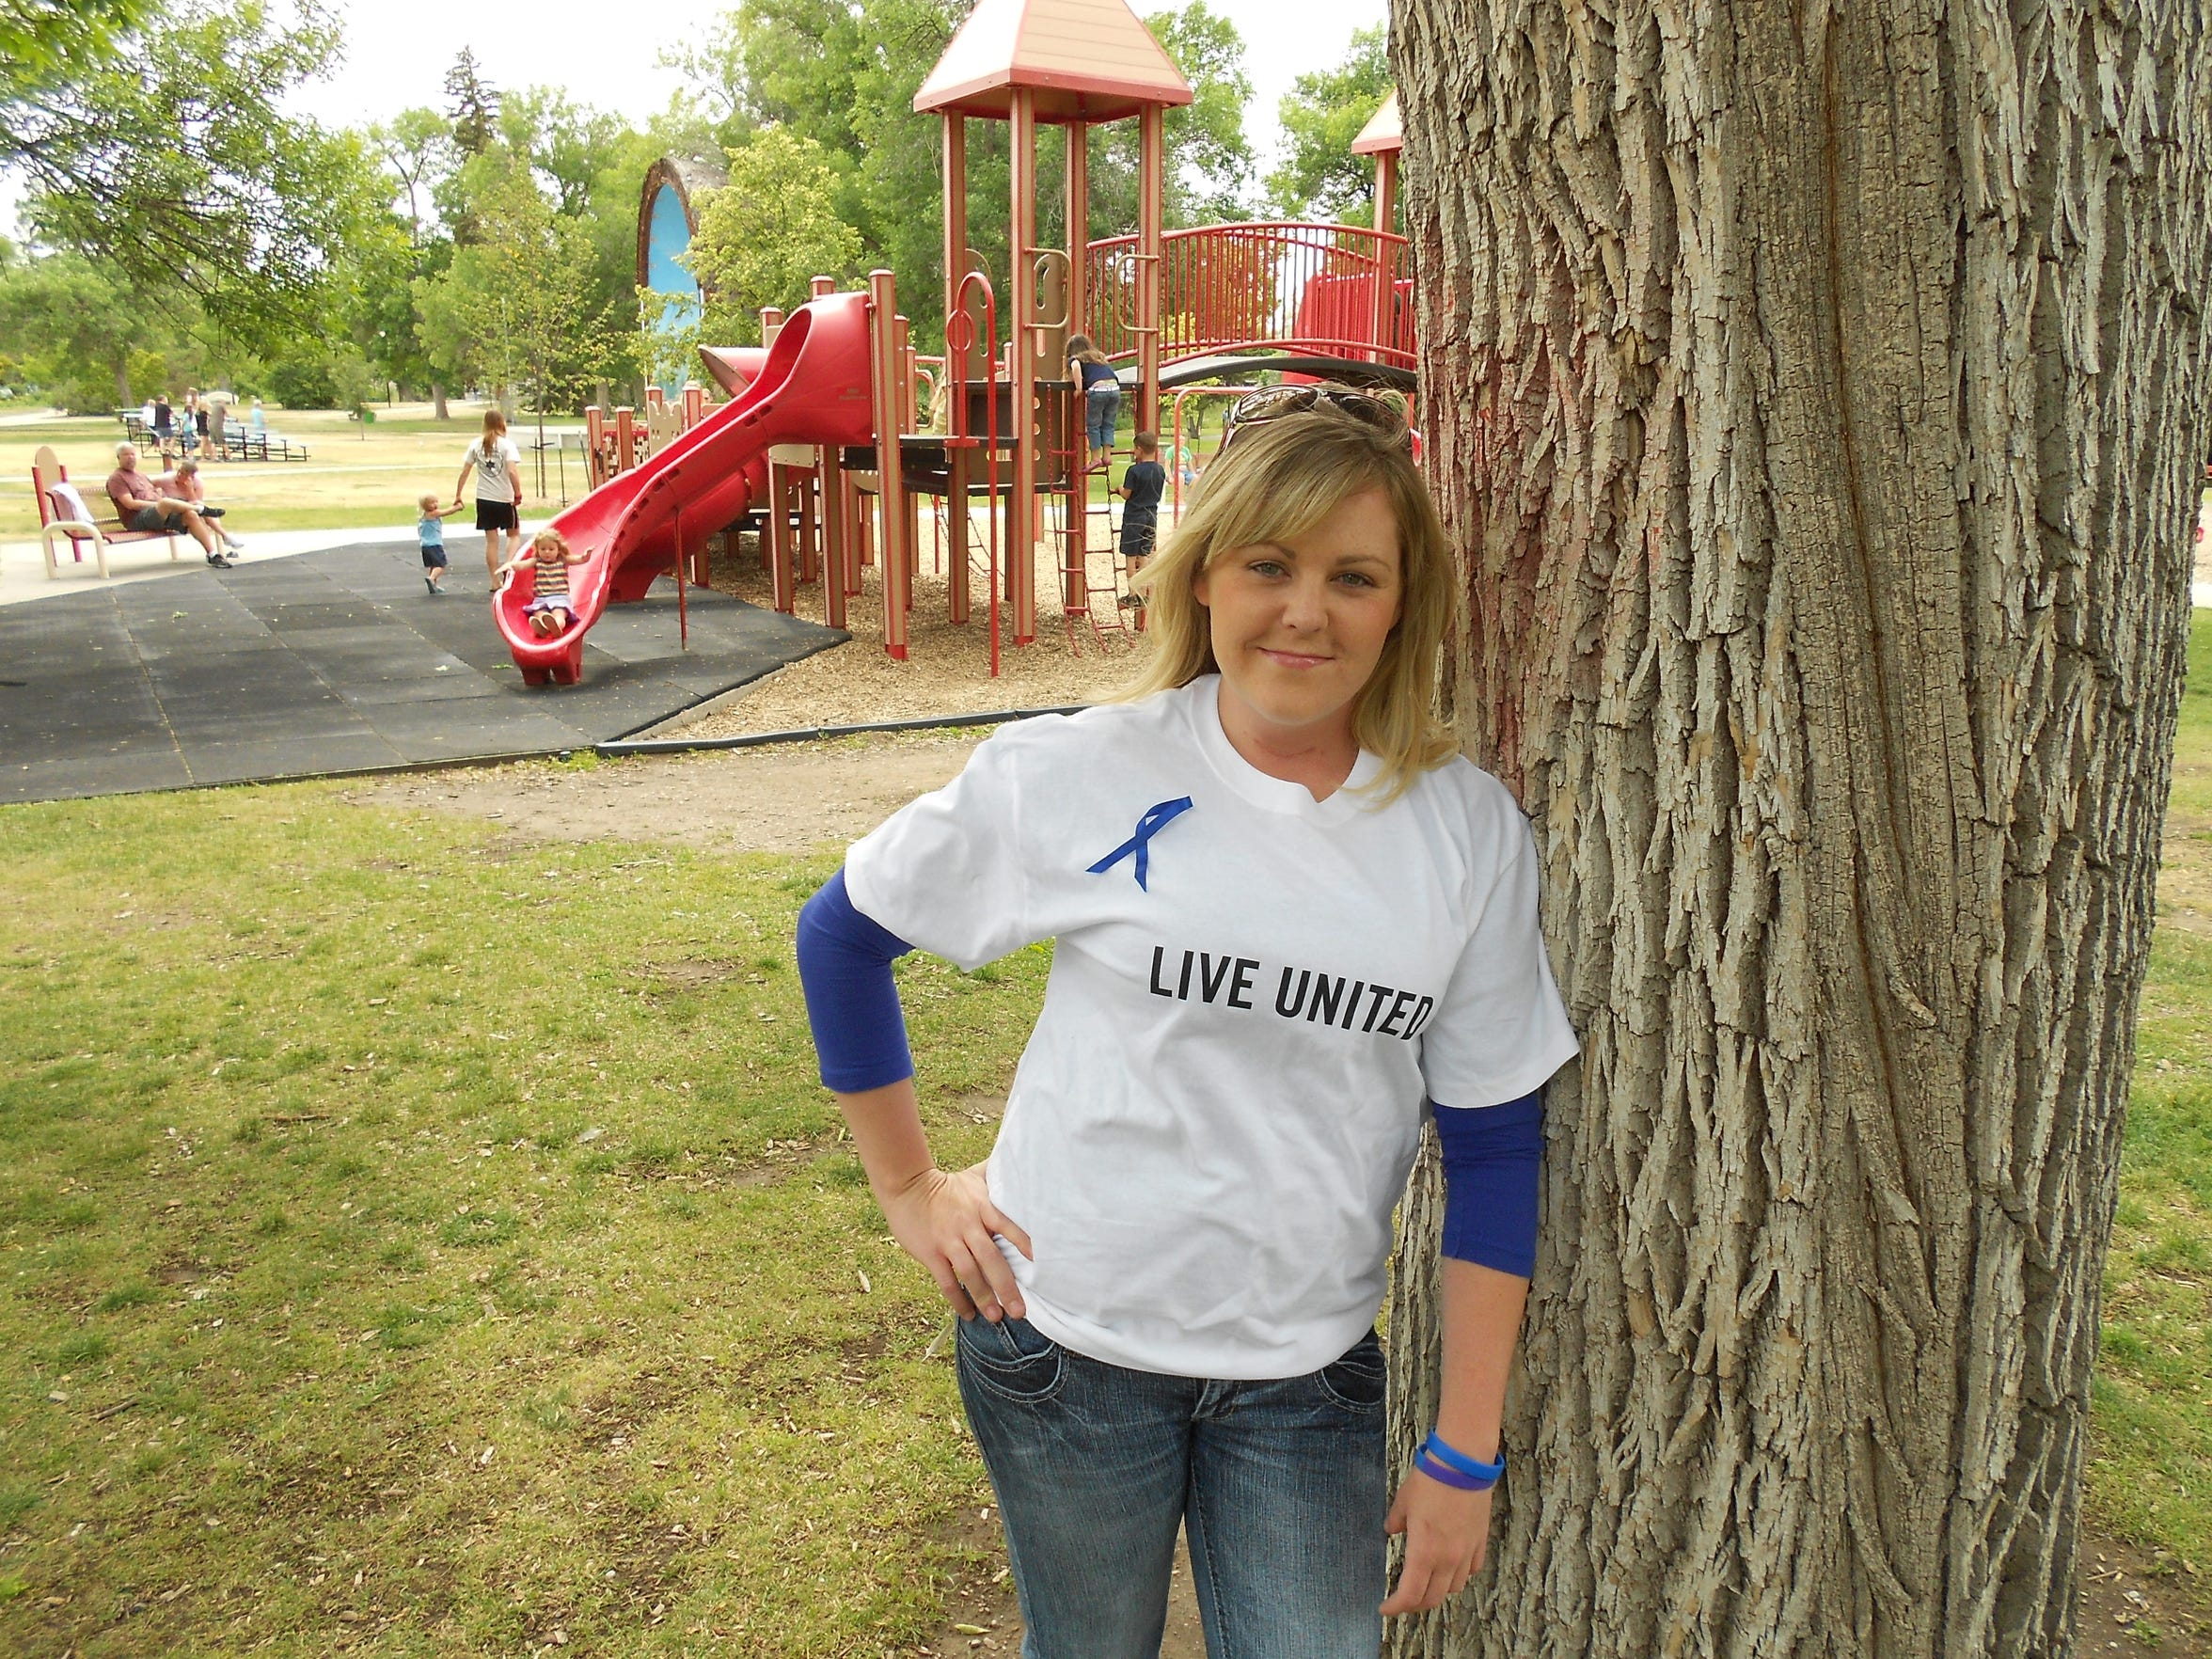 Jessica Bray, the founder of the Dandelion Foundation, a local nonprofit that seeks to end child abuse in Great Falls.